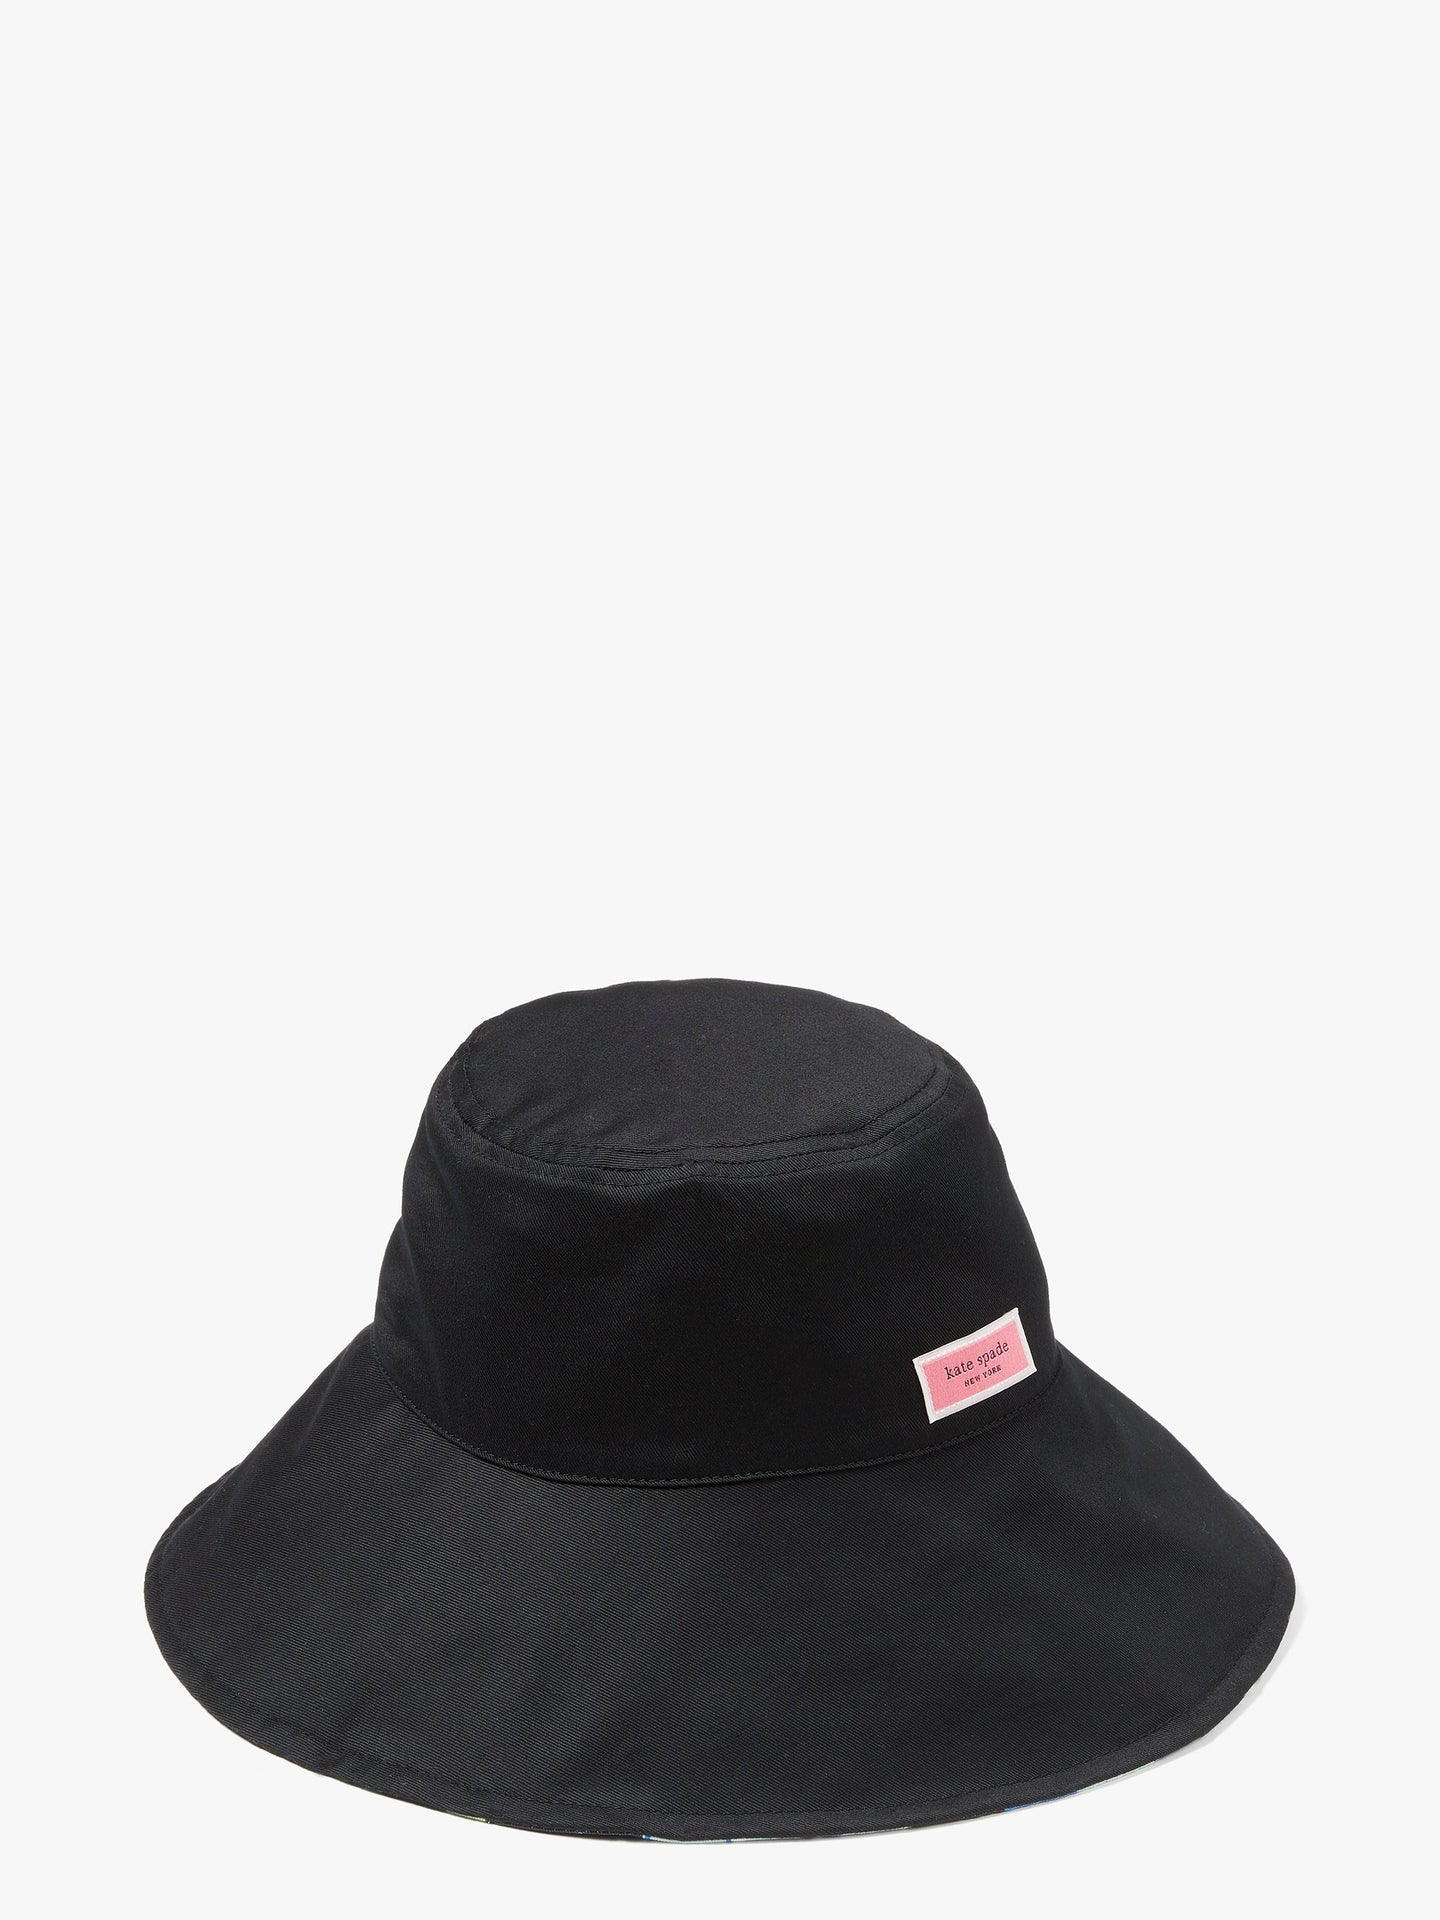 FULL BLOOM REVERSIBLE BUCKET HAT